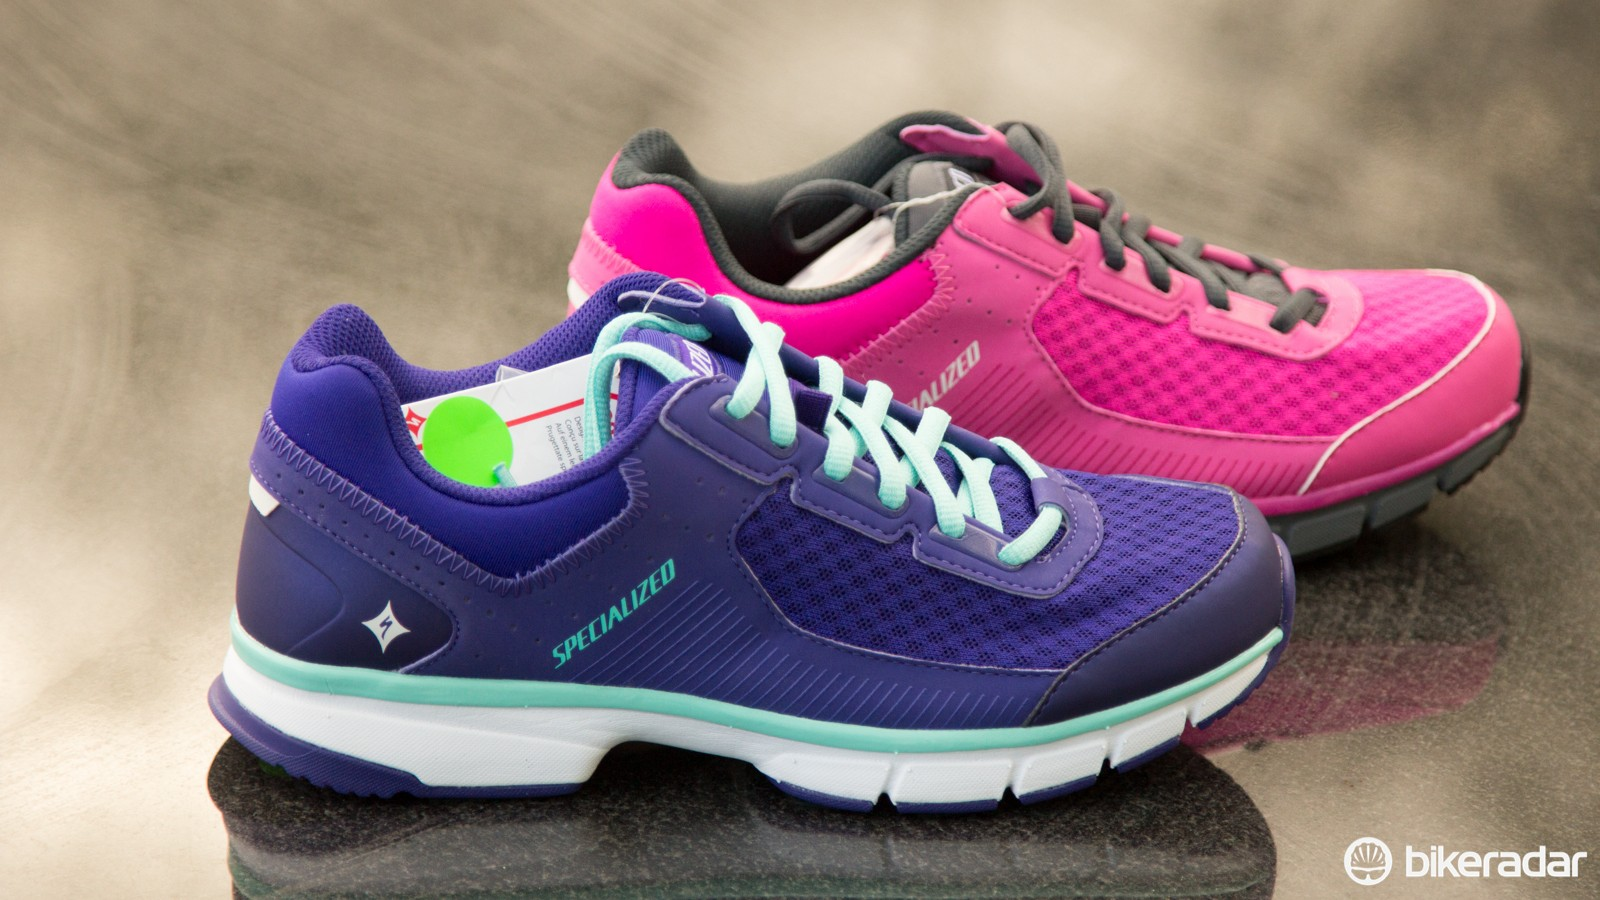 Specialized Cadette shoes (US$TBC / AU$119.95 / UK£TBC) are new for 2015